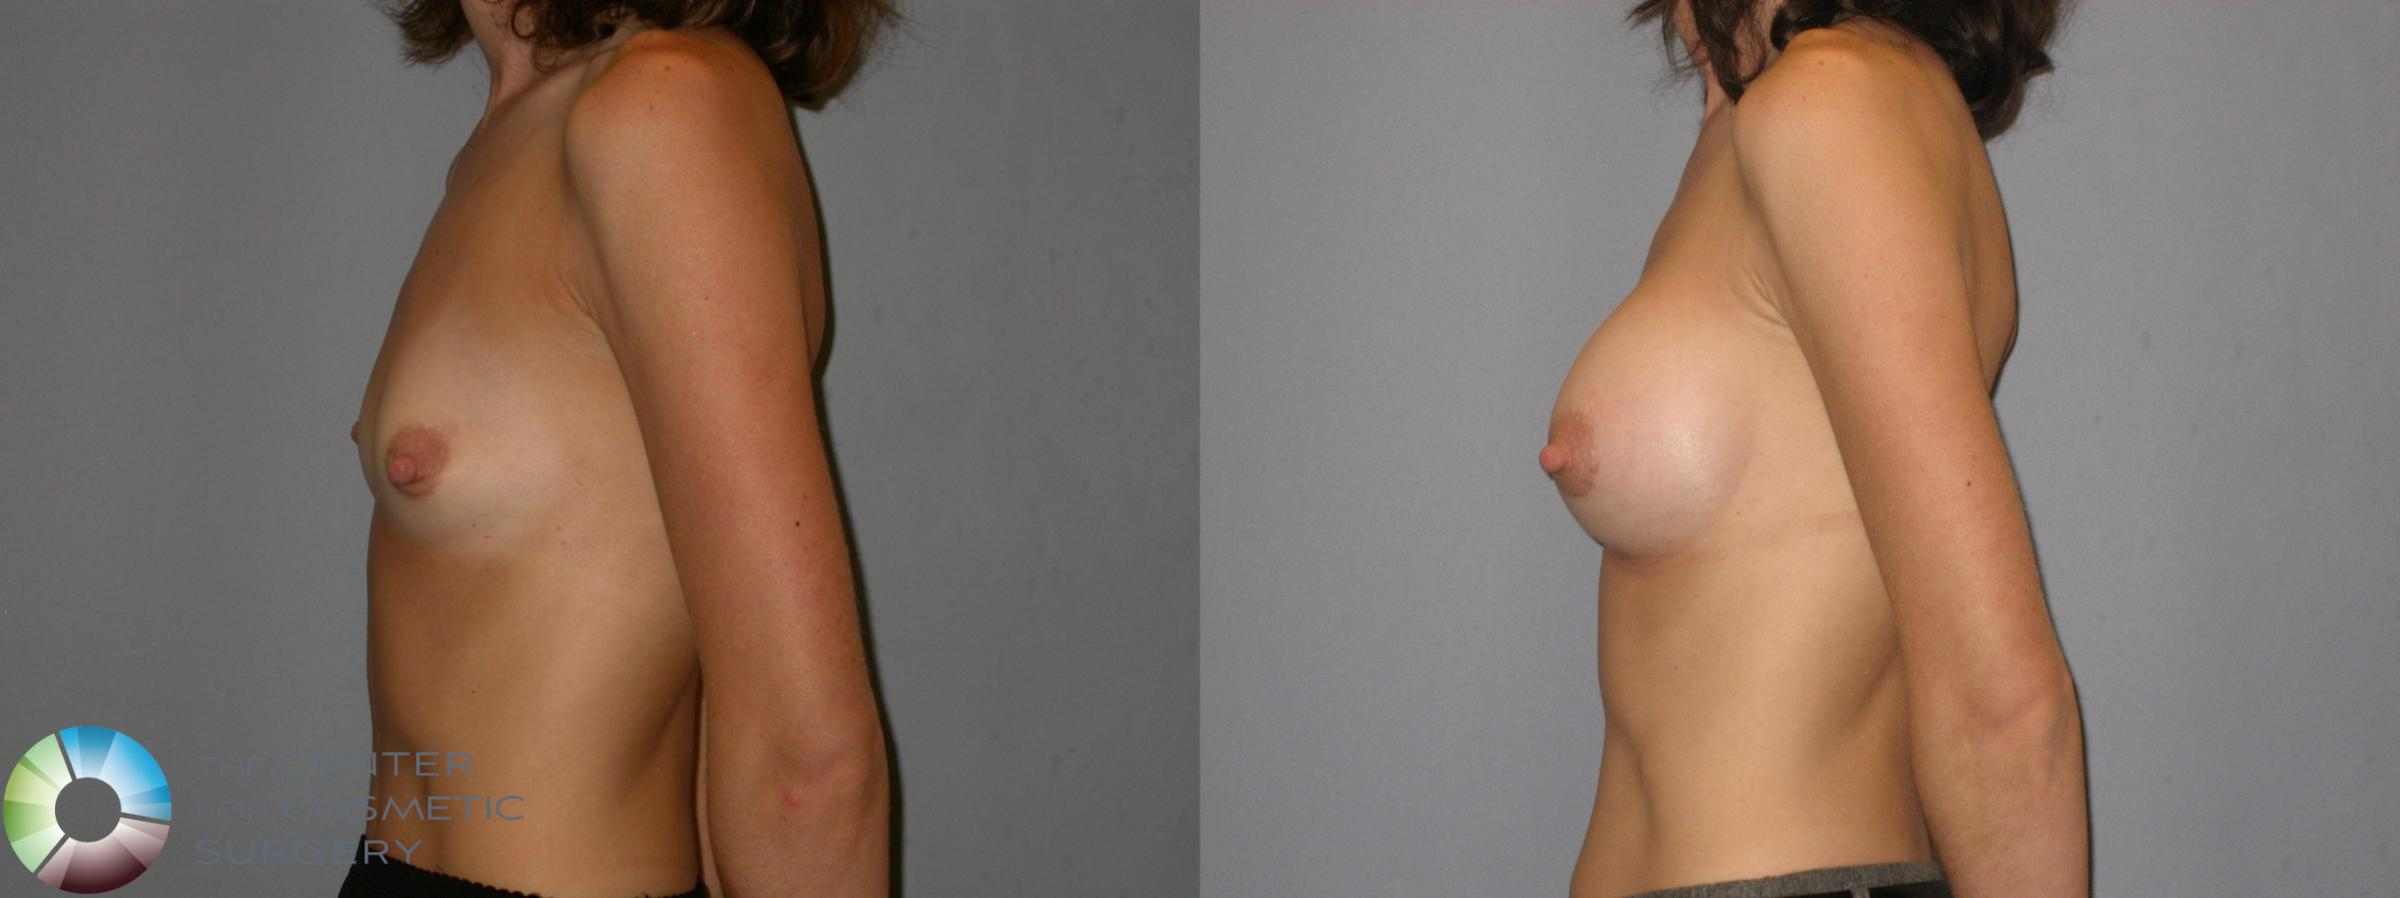 Breast Augmentation Case 113 Before & After View #3 | Golden, CO | The Center for Cosmetic Surgery